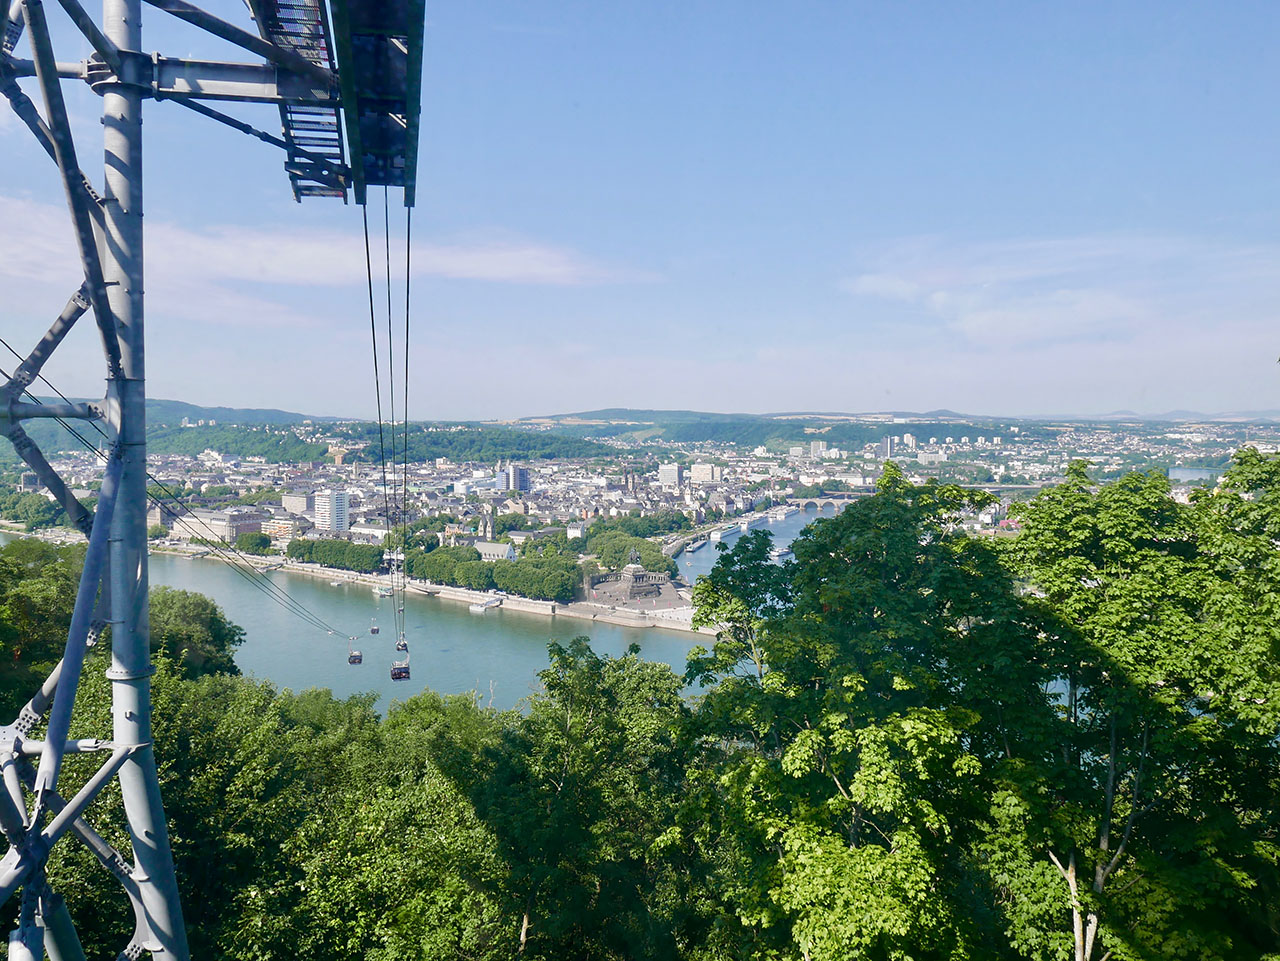 Cara Sharratt Travel - Koblenz, Germany